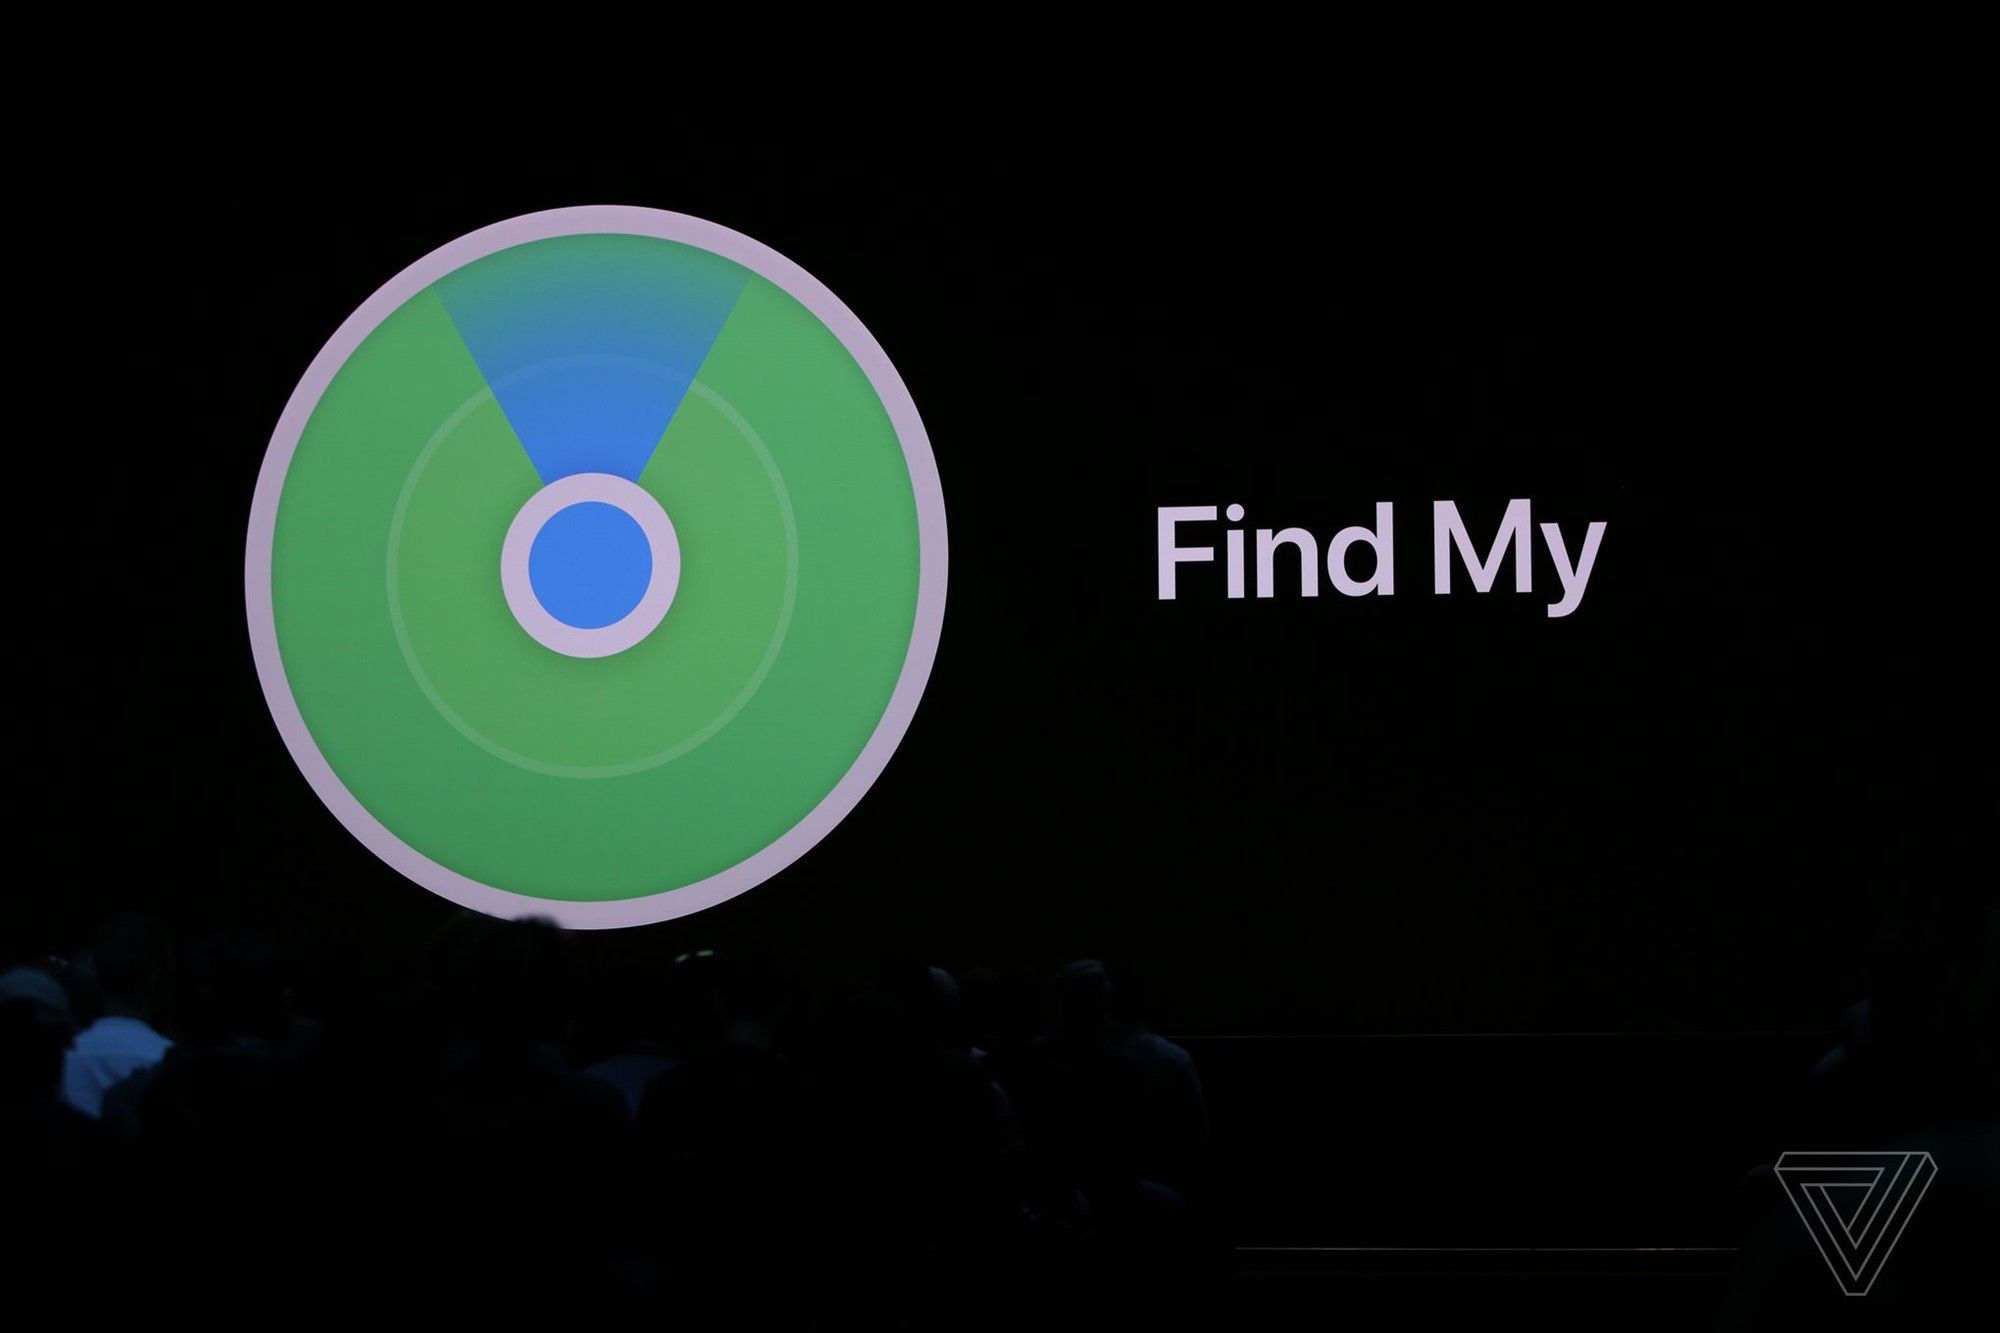 New iPhone Feature Will Find Your Lost/Stolen Phone, Even If It's Off